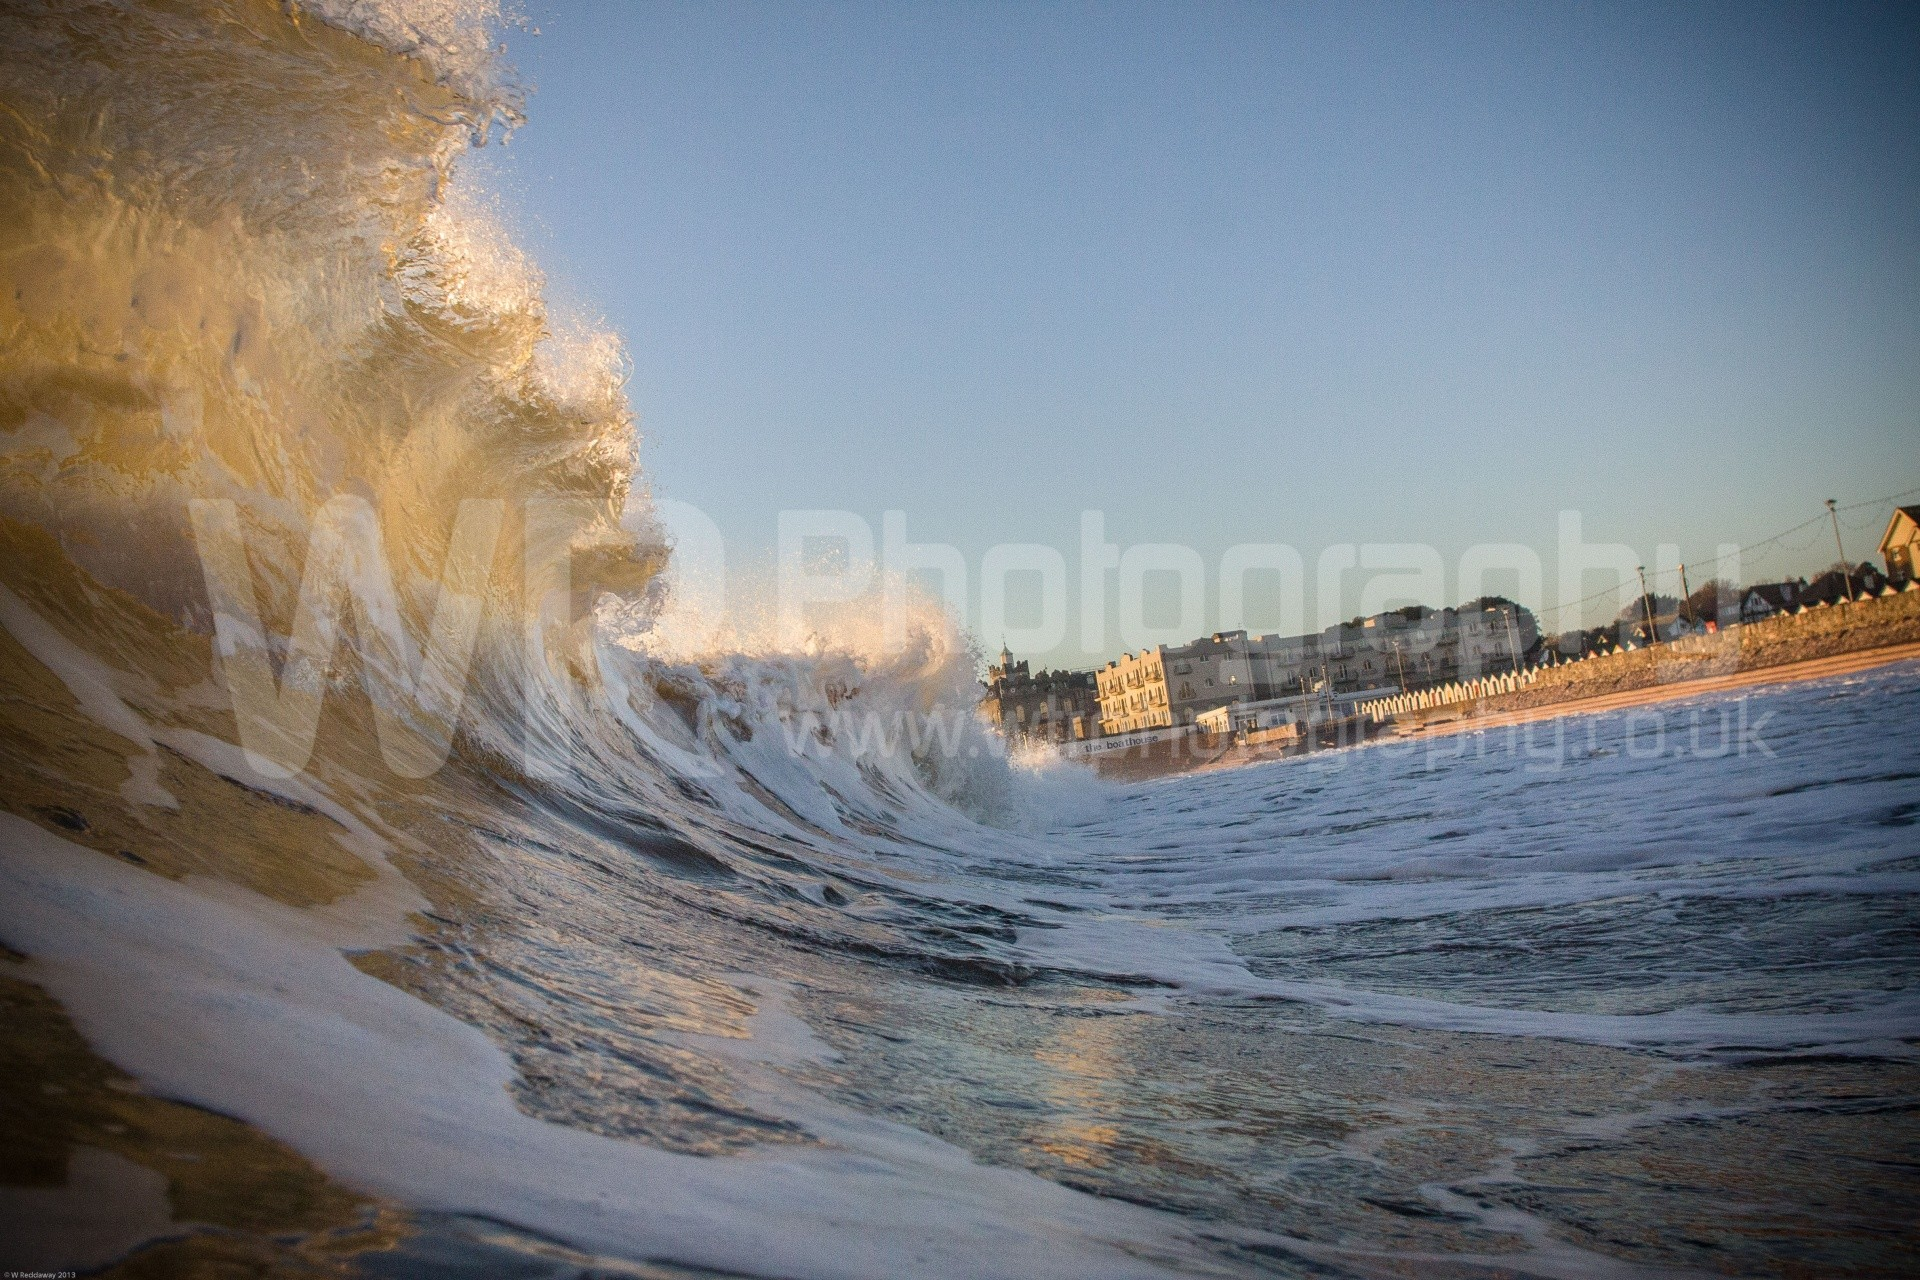 Will Reddaway's photo of Paignton